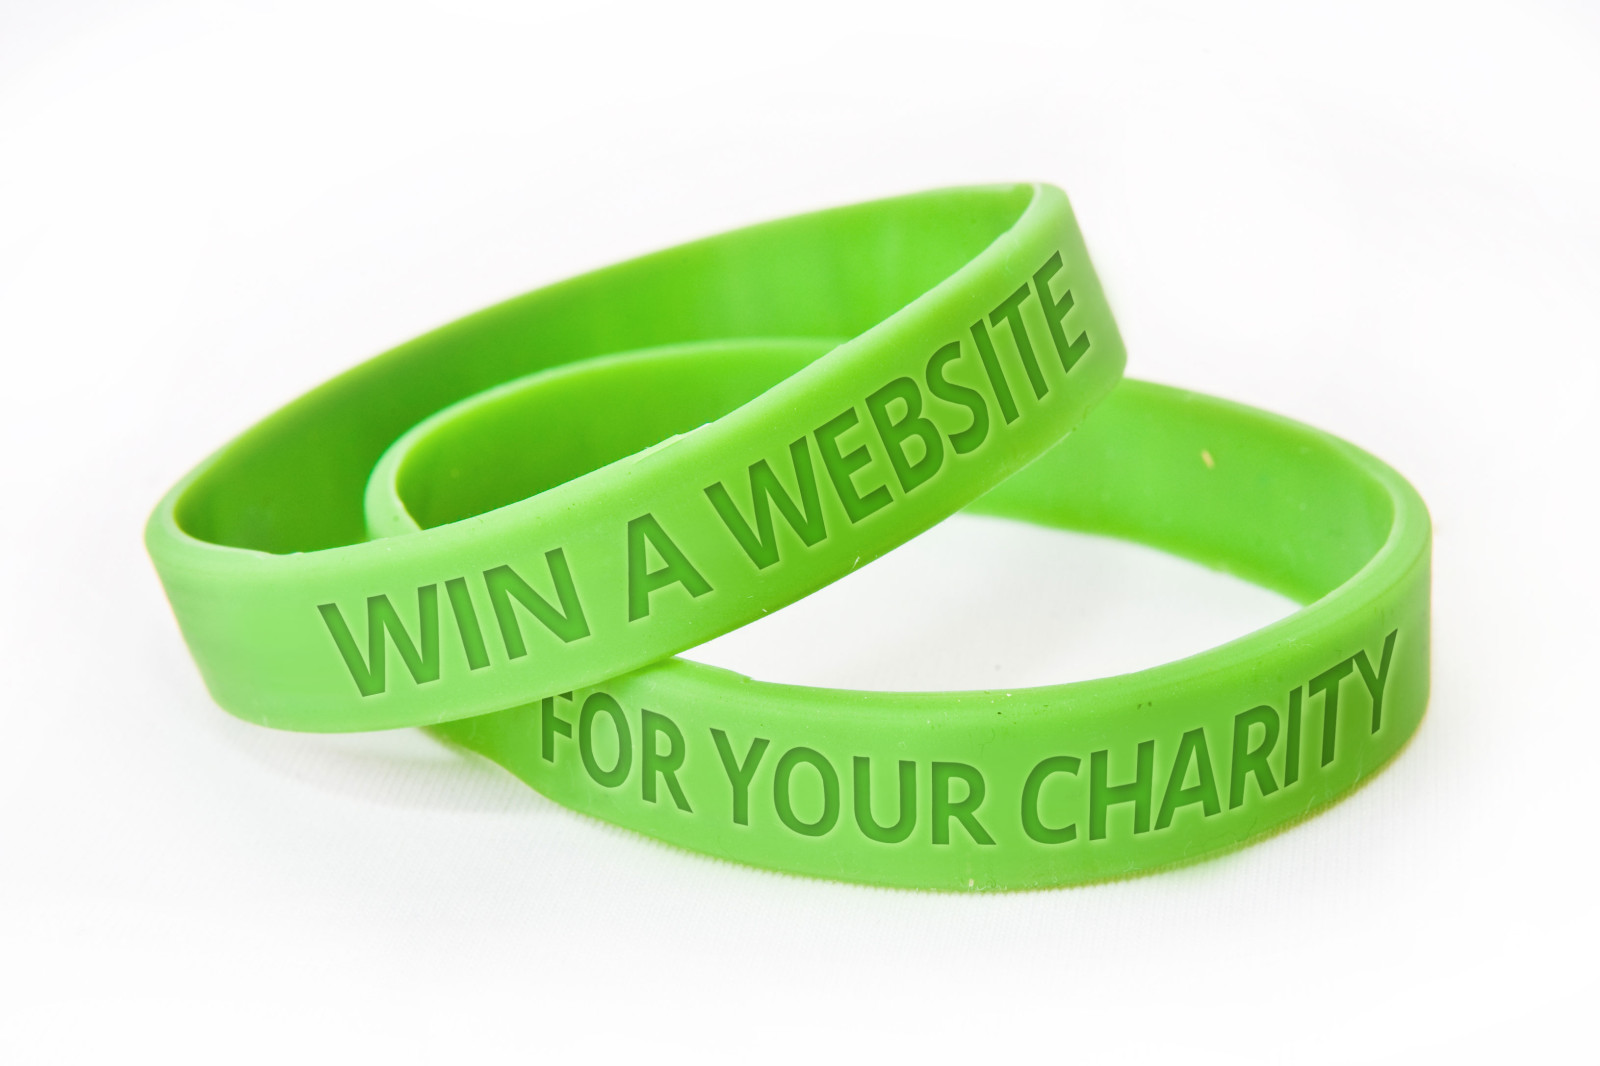 adigi charity website competition